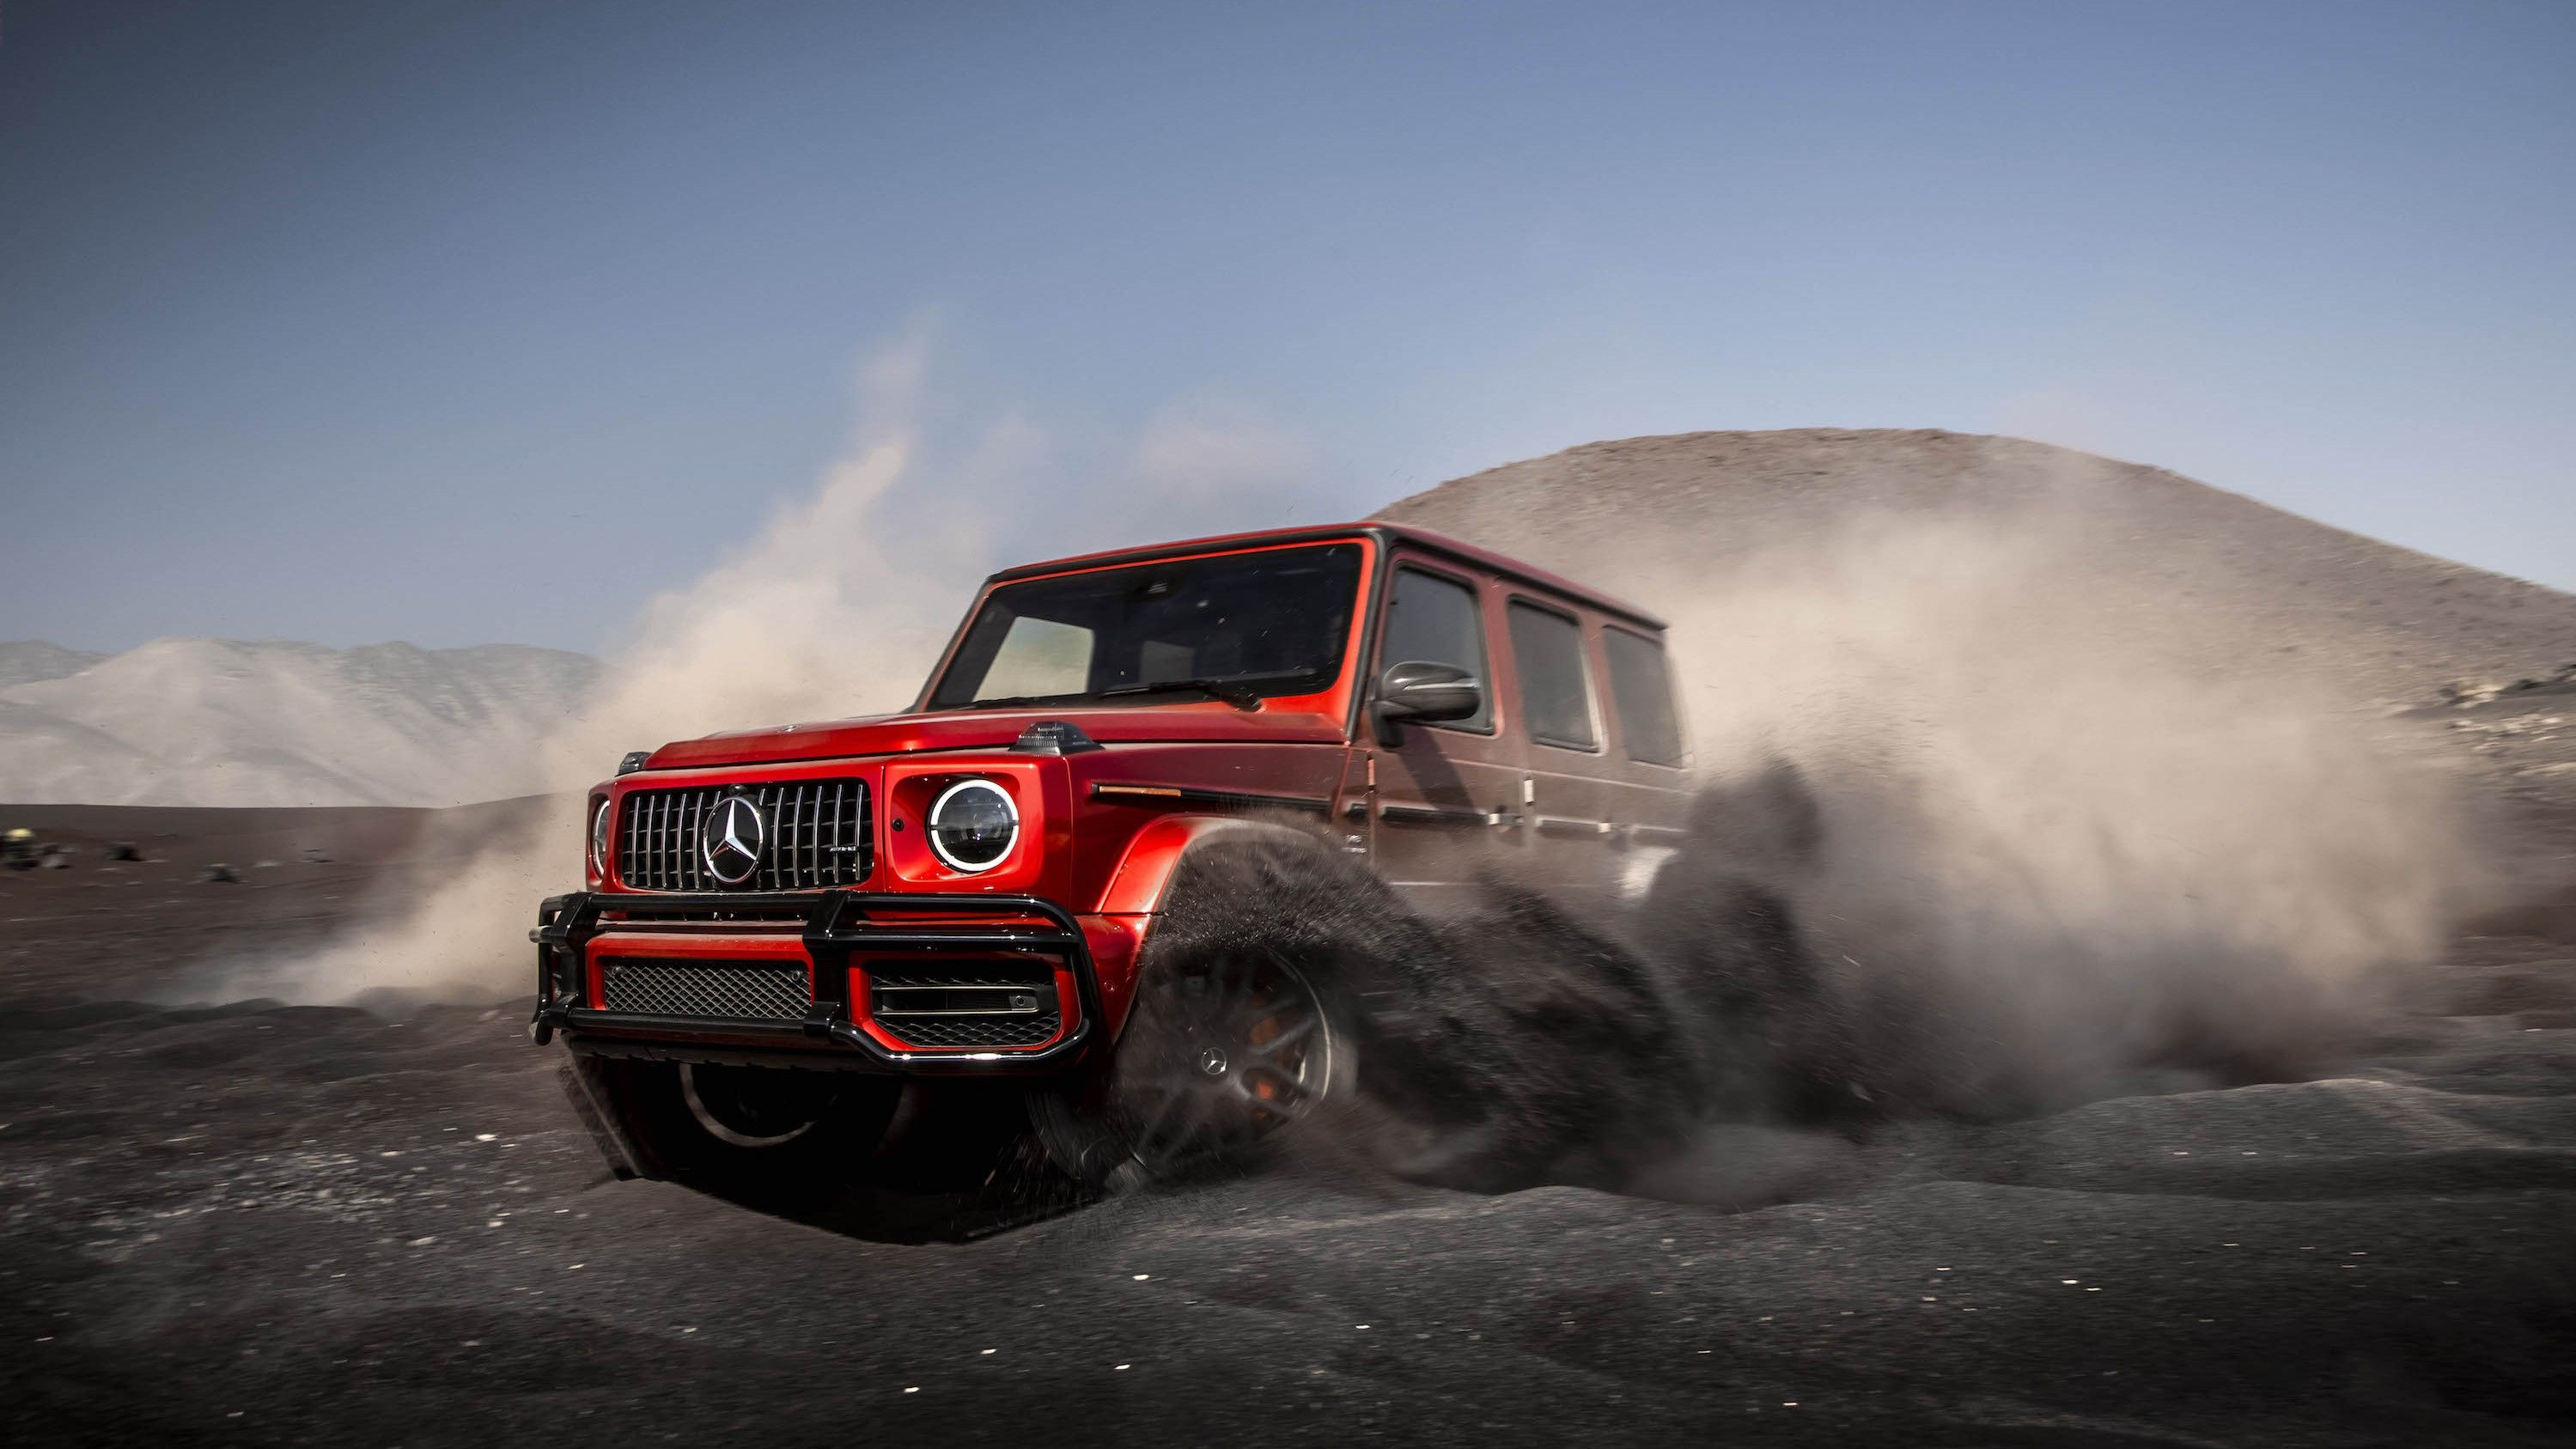 2021 Mercedes Benz G Class Review Pricing Specs Off Roading And Rivals Compared